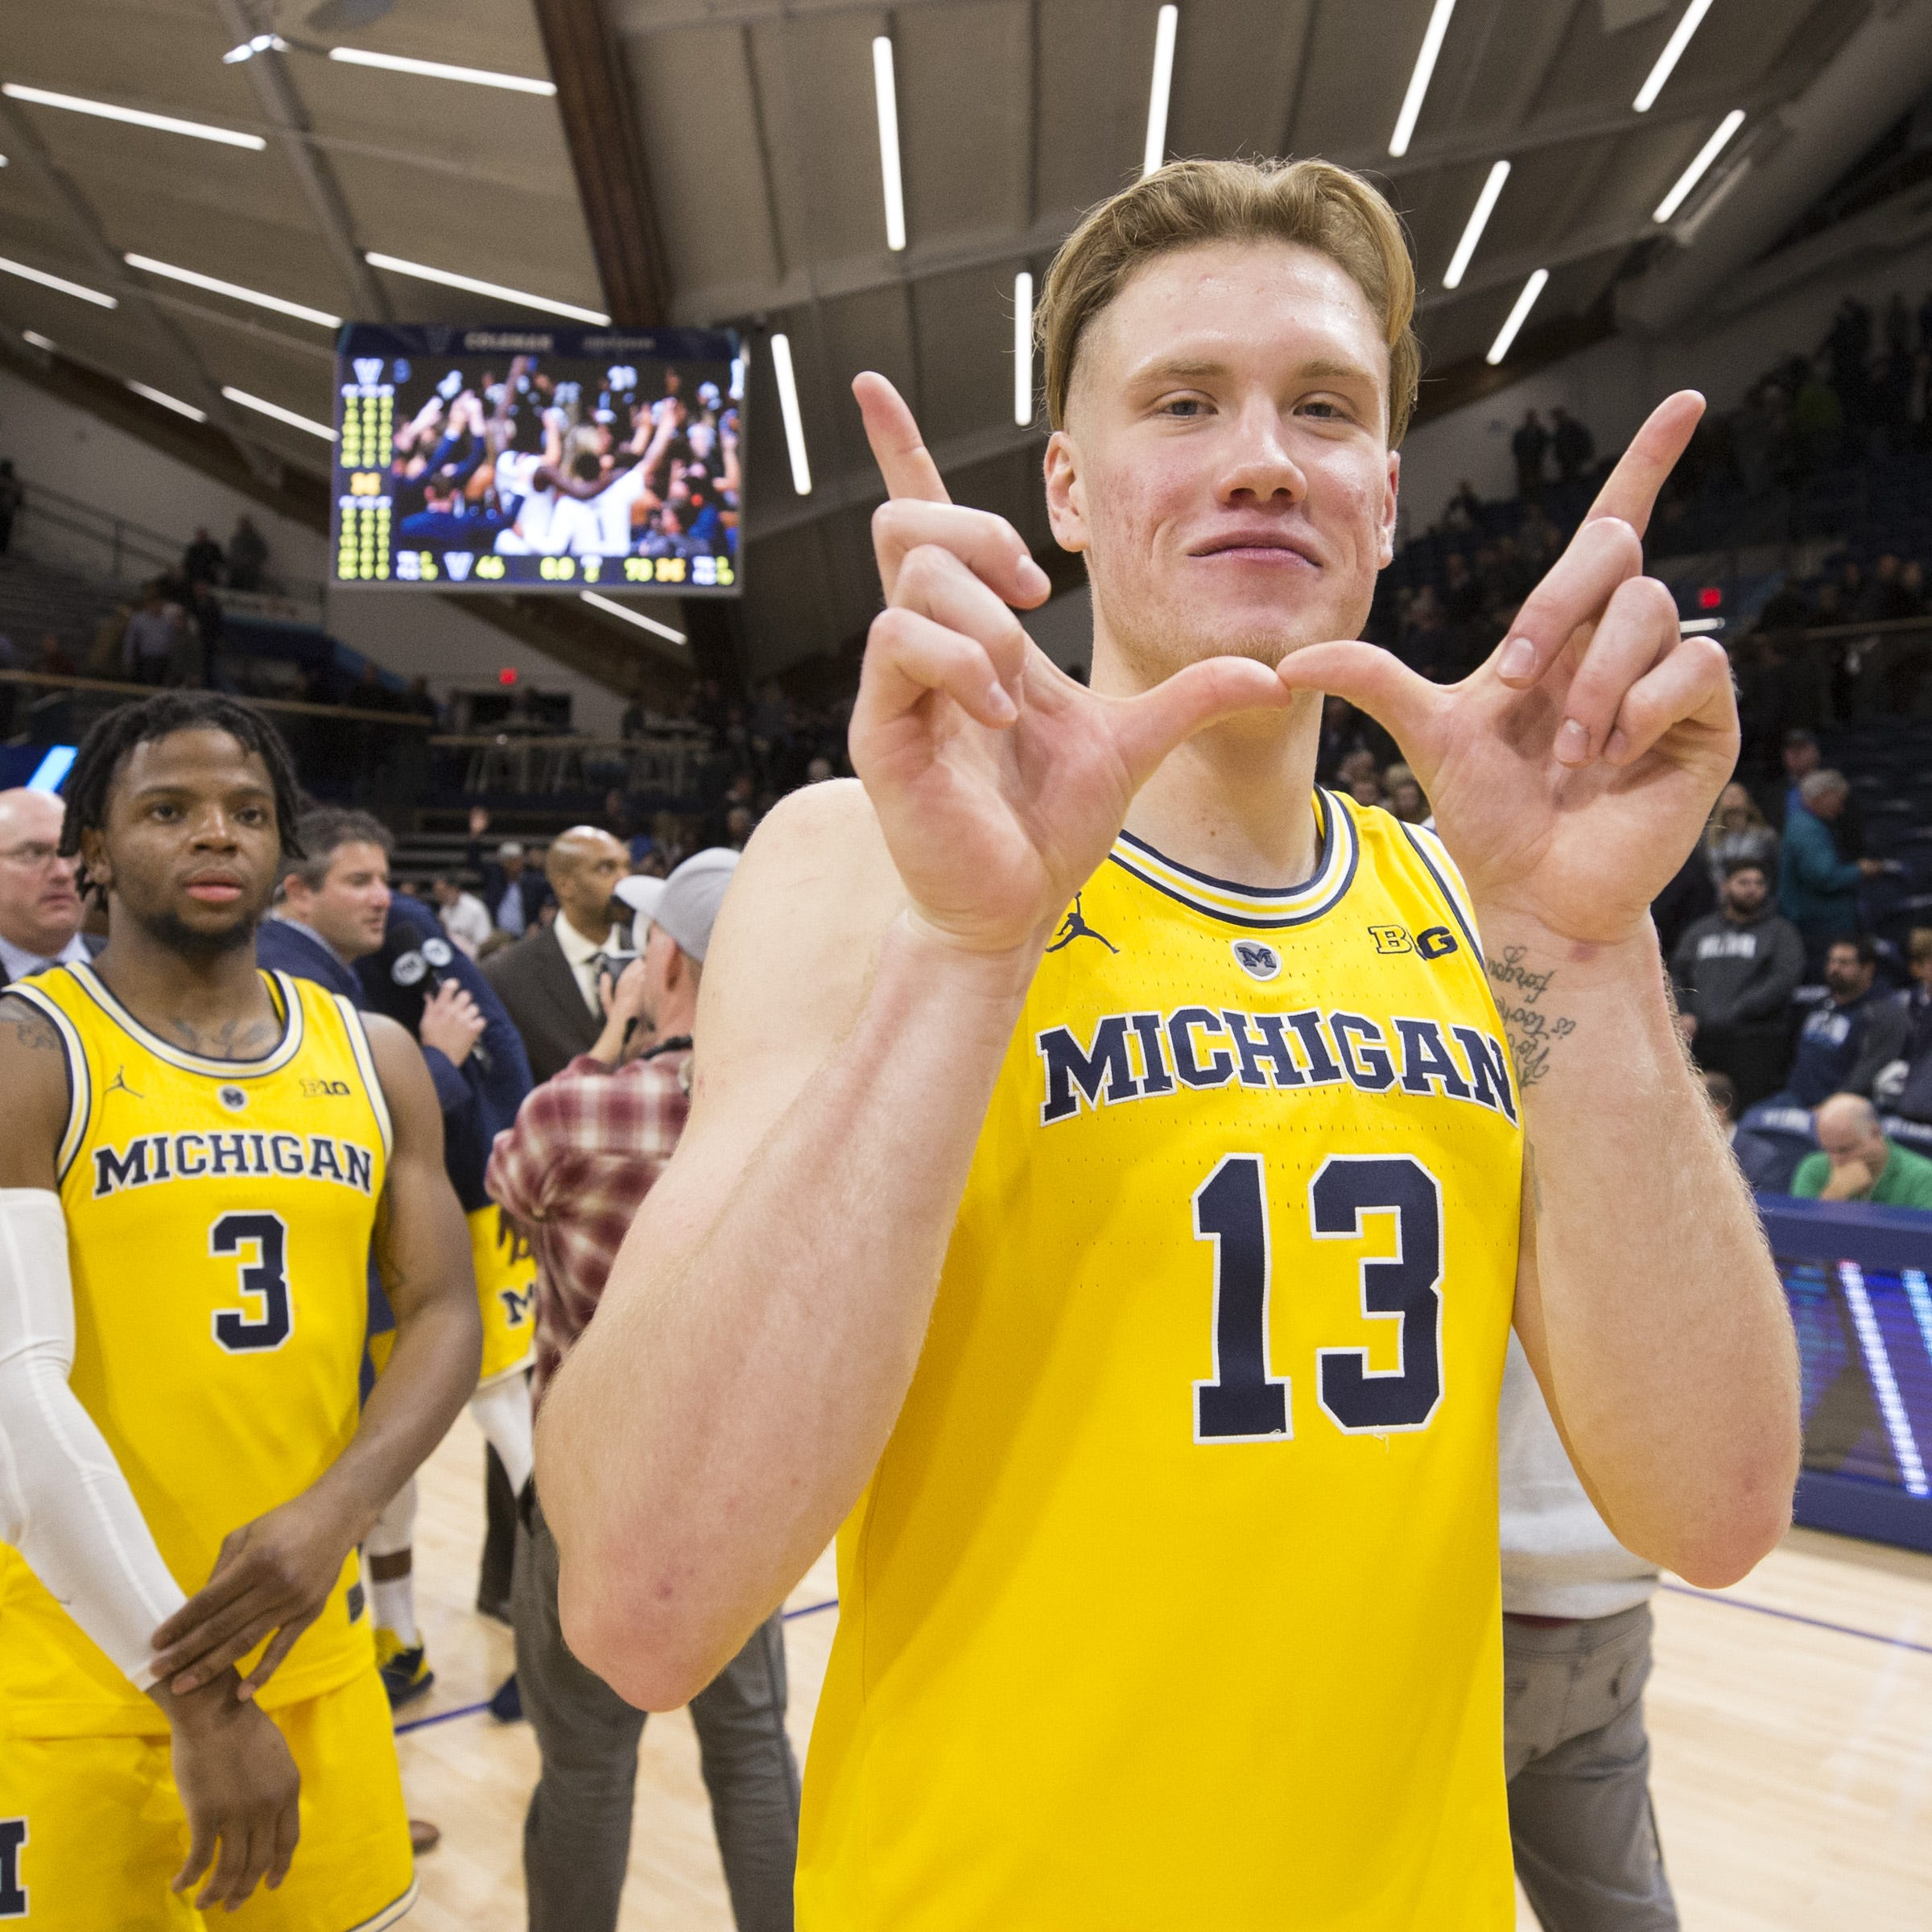 Michigan basketball looked like a juggernaut vs. Villanova. Here's why